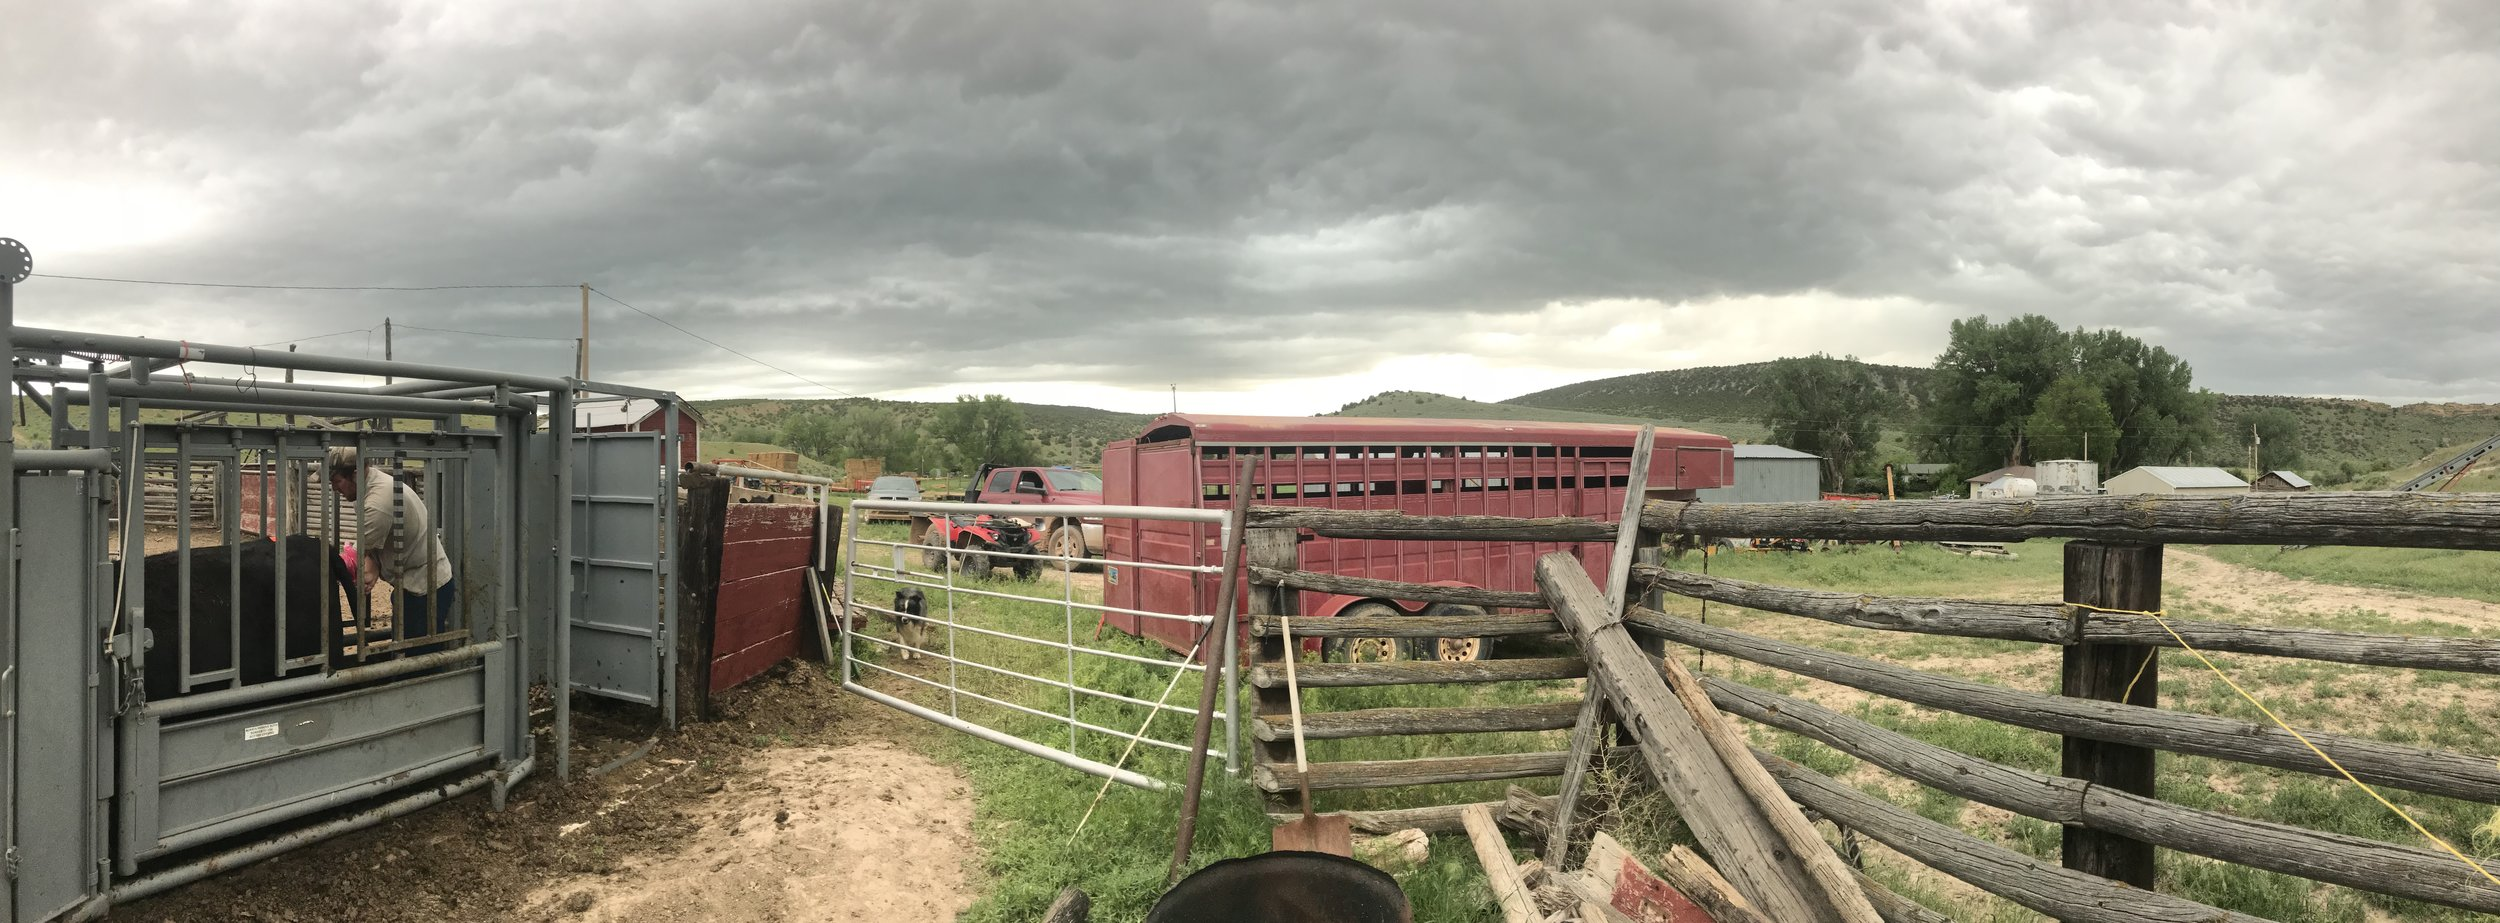 Storm blowing in.